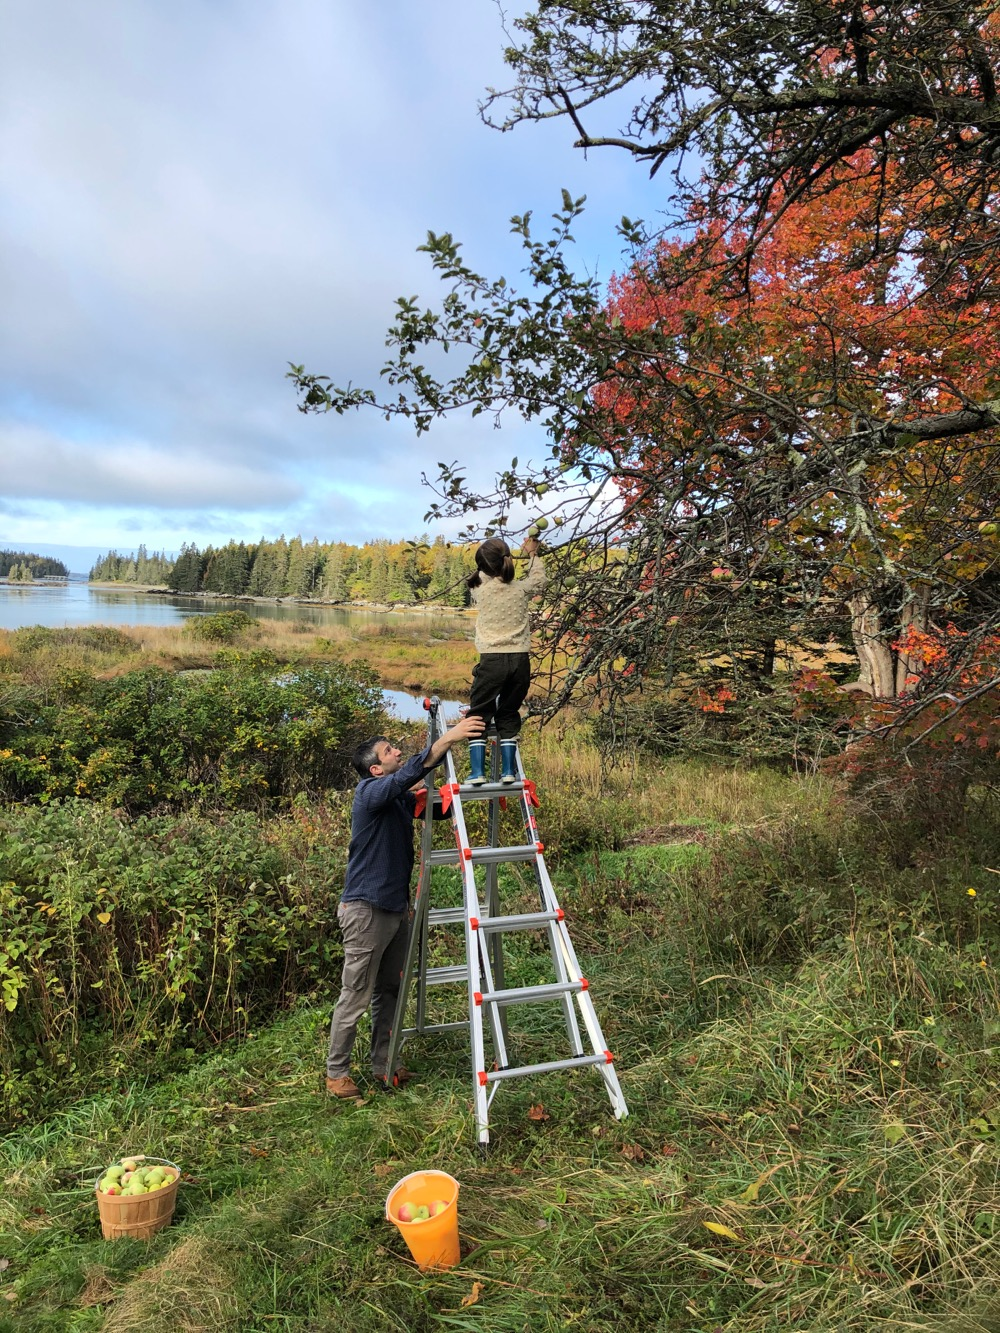 Using a ladder to reach and pick cider apples